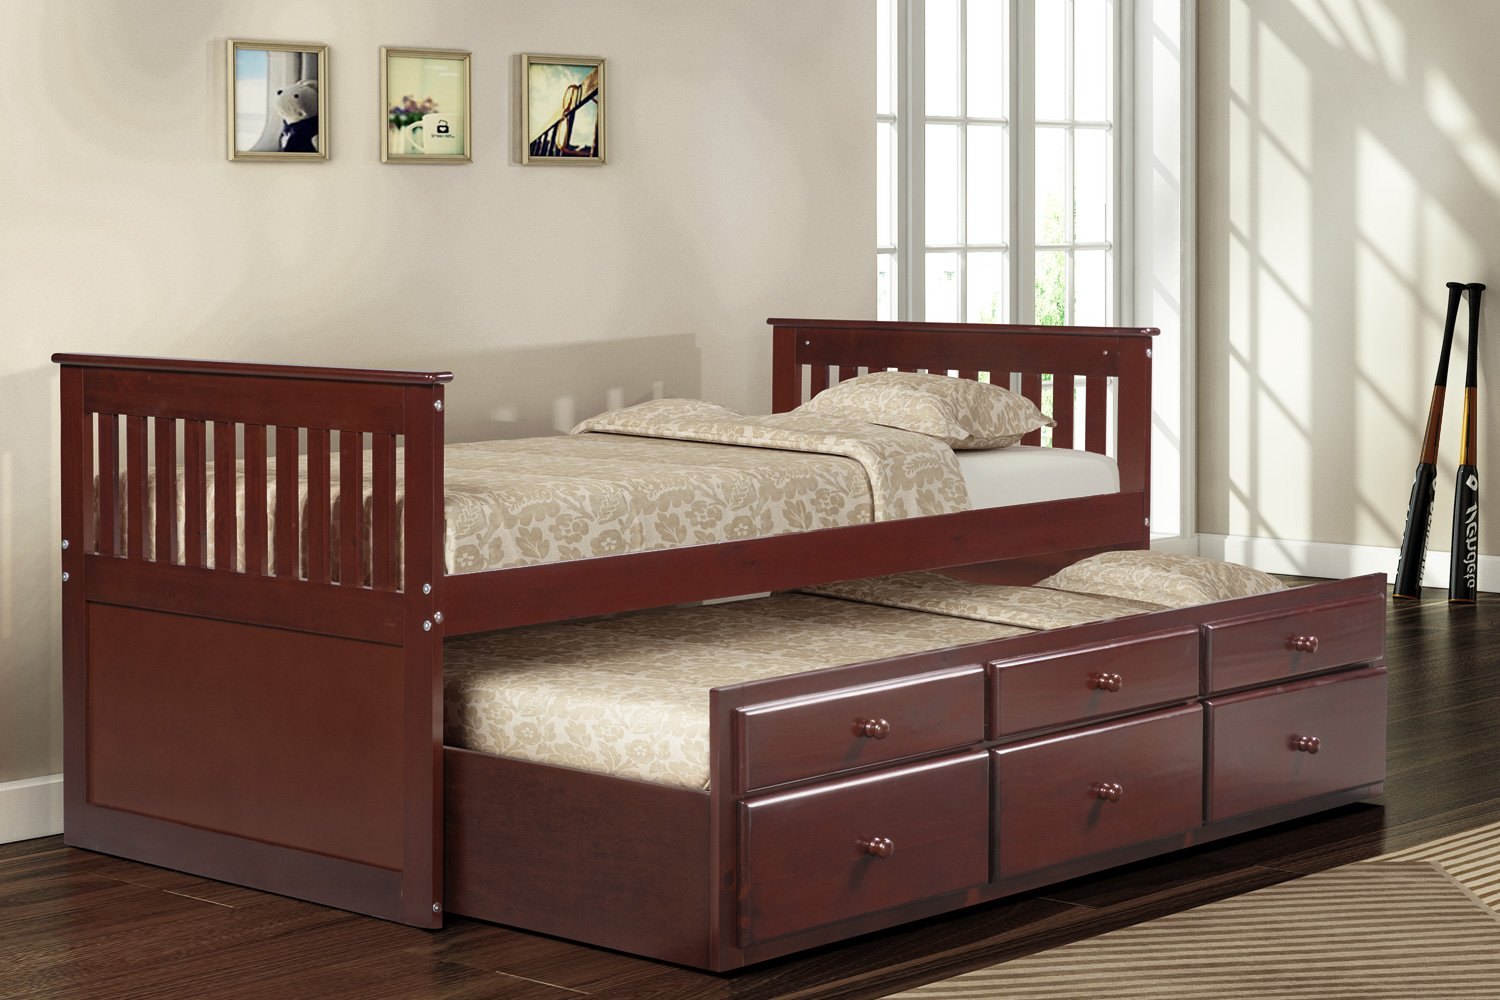 Amazoncom Merax Captains Bed With Trundle Bed And Drawers Twin